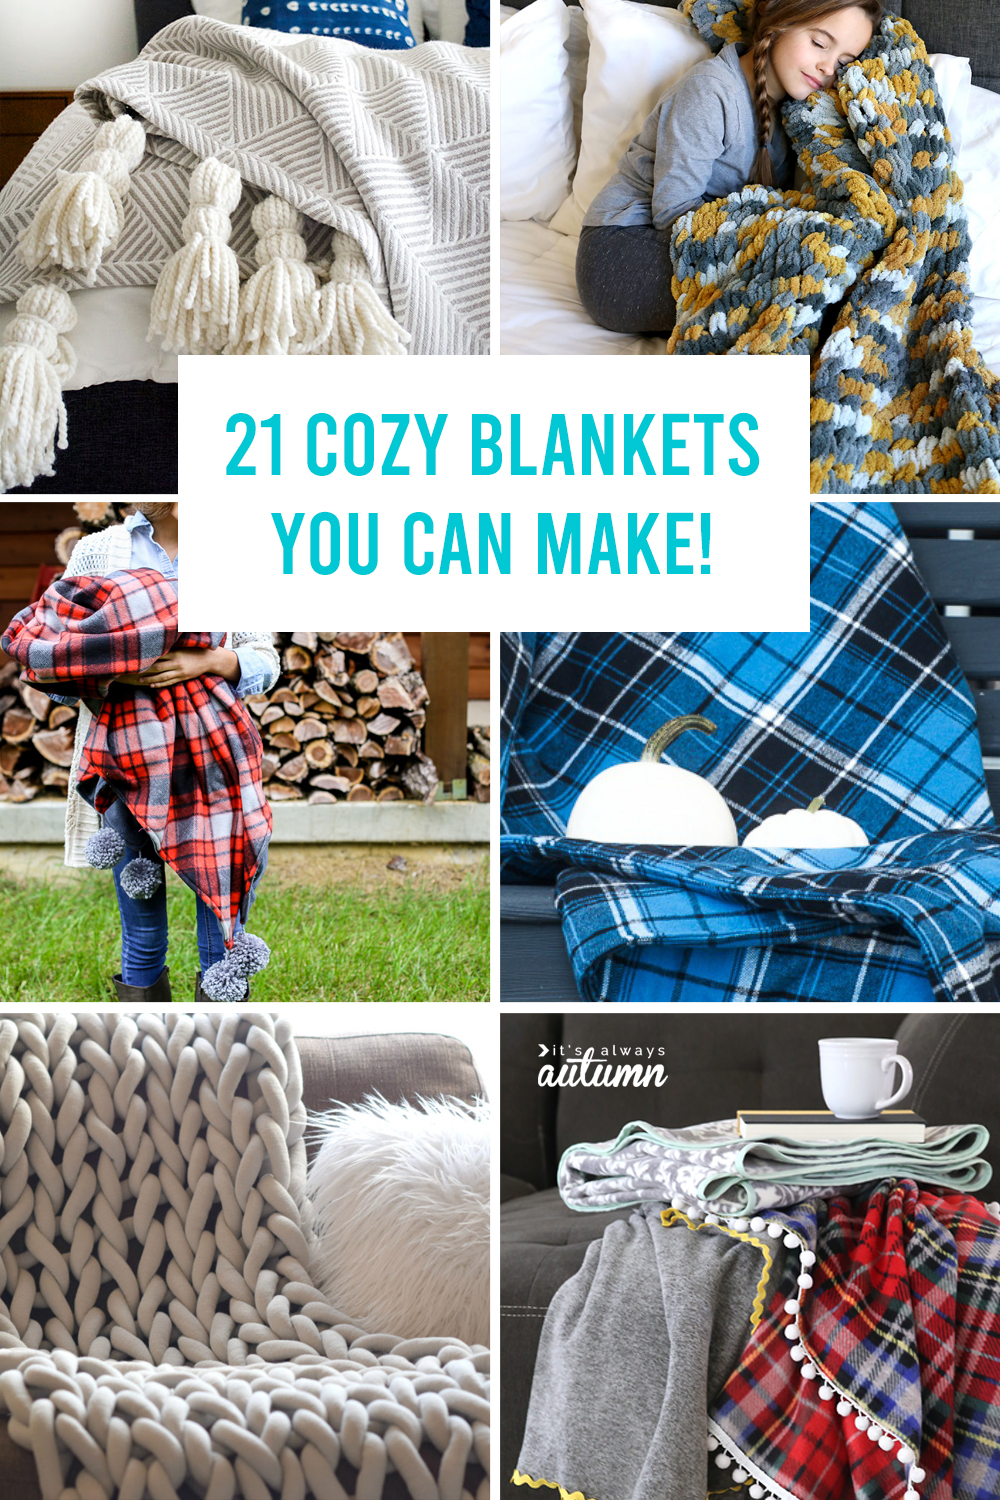 21 Cozy Blanket tutorials that will teach you how to make a blanket